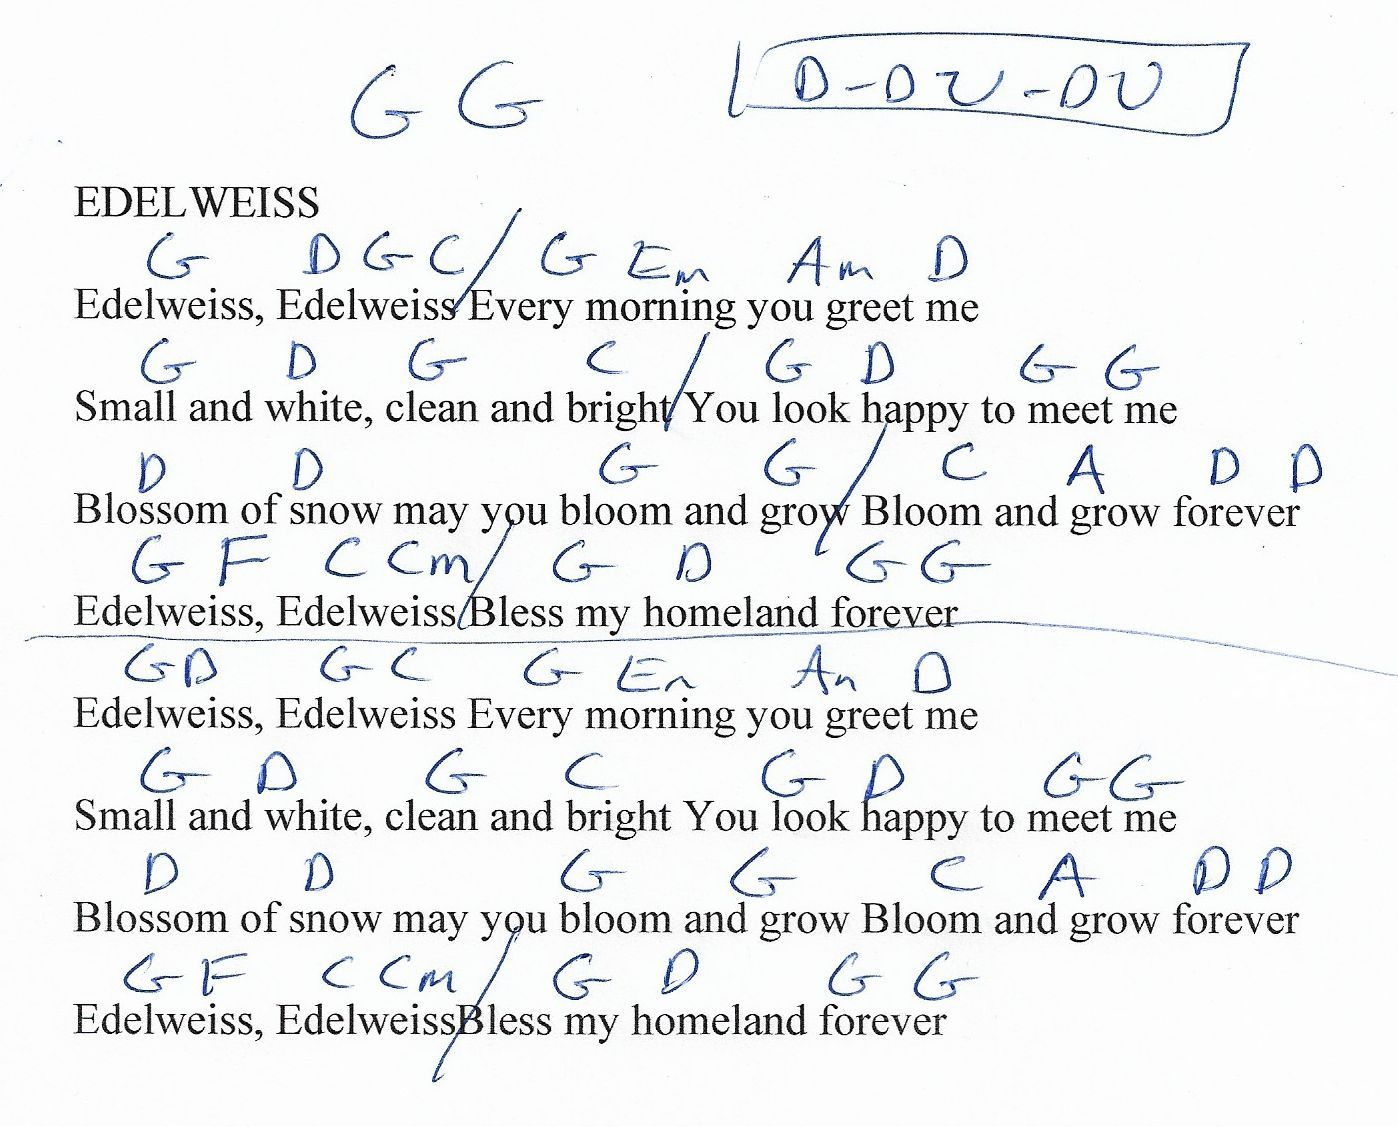 Edelweiss Sound Of Music Guitar Chord Chart Capo 1st Guitar